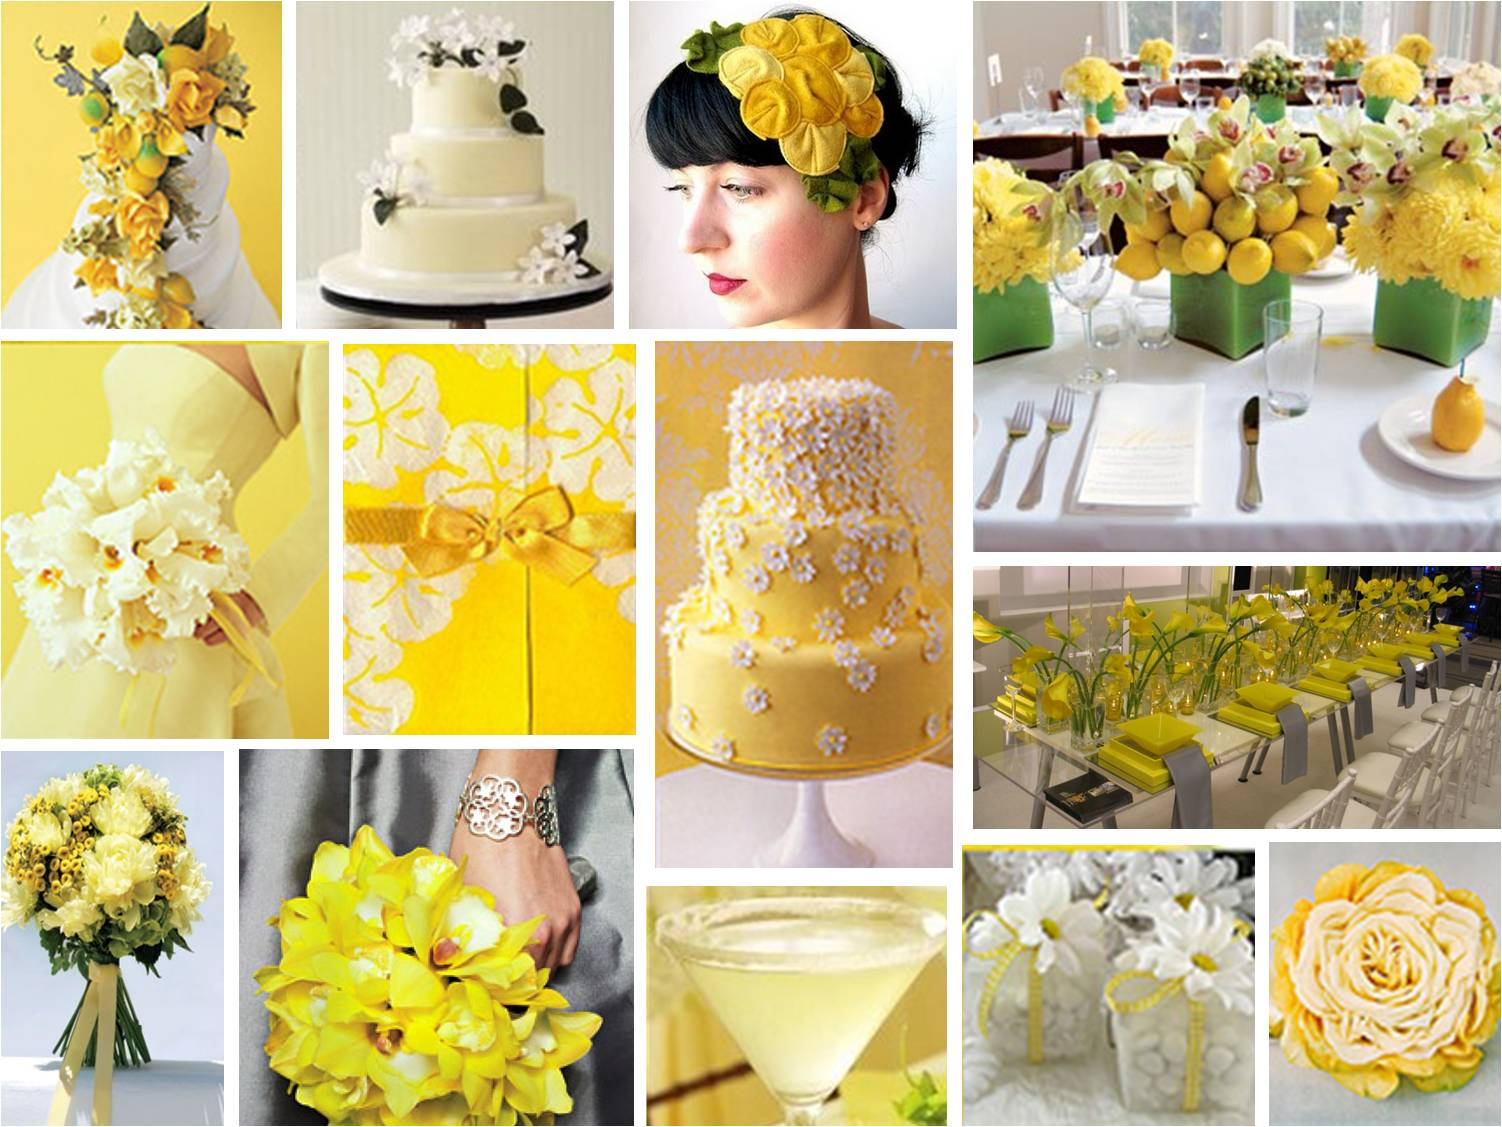 Mellow Yellow is a fresh summer wedding theme combining both pastel and